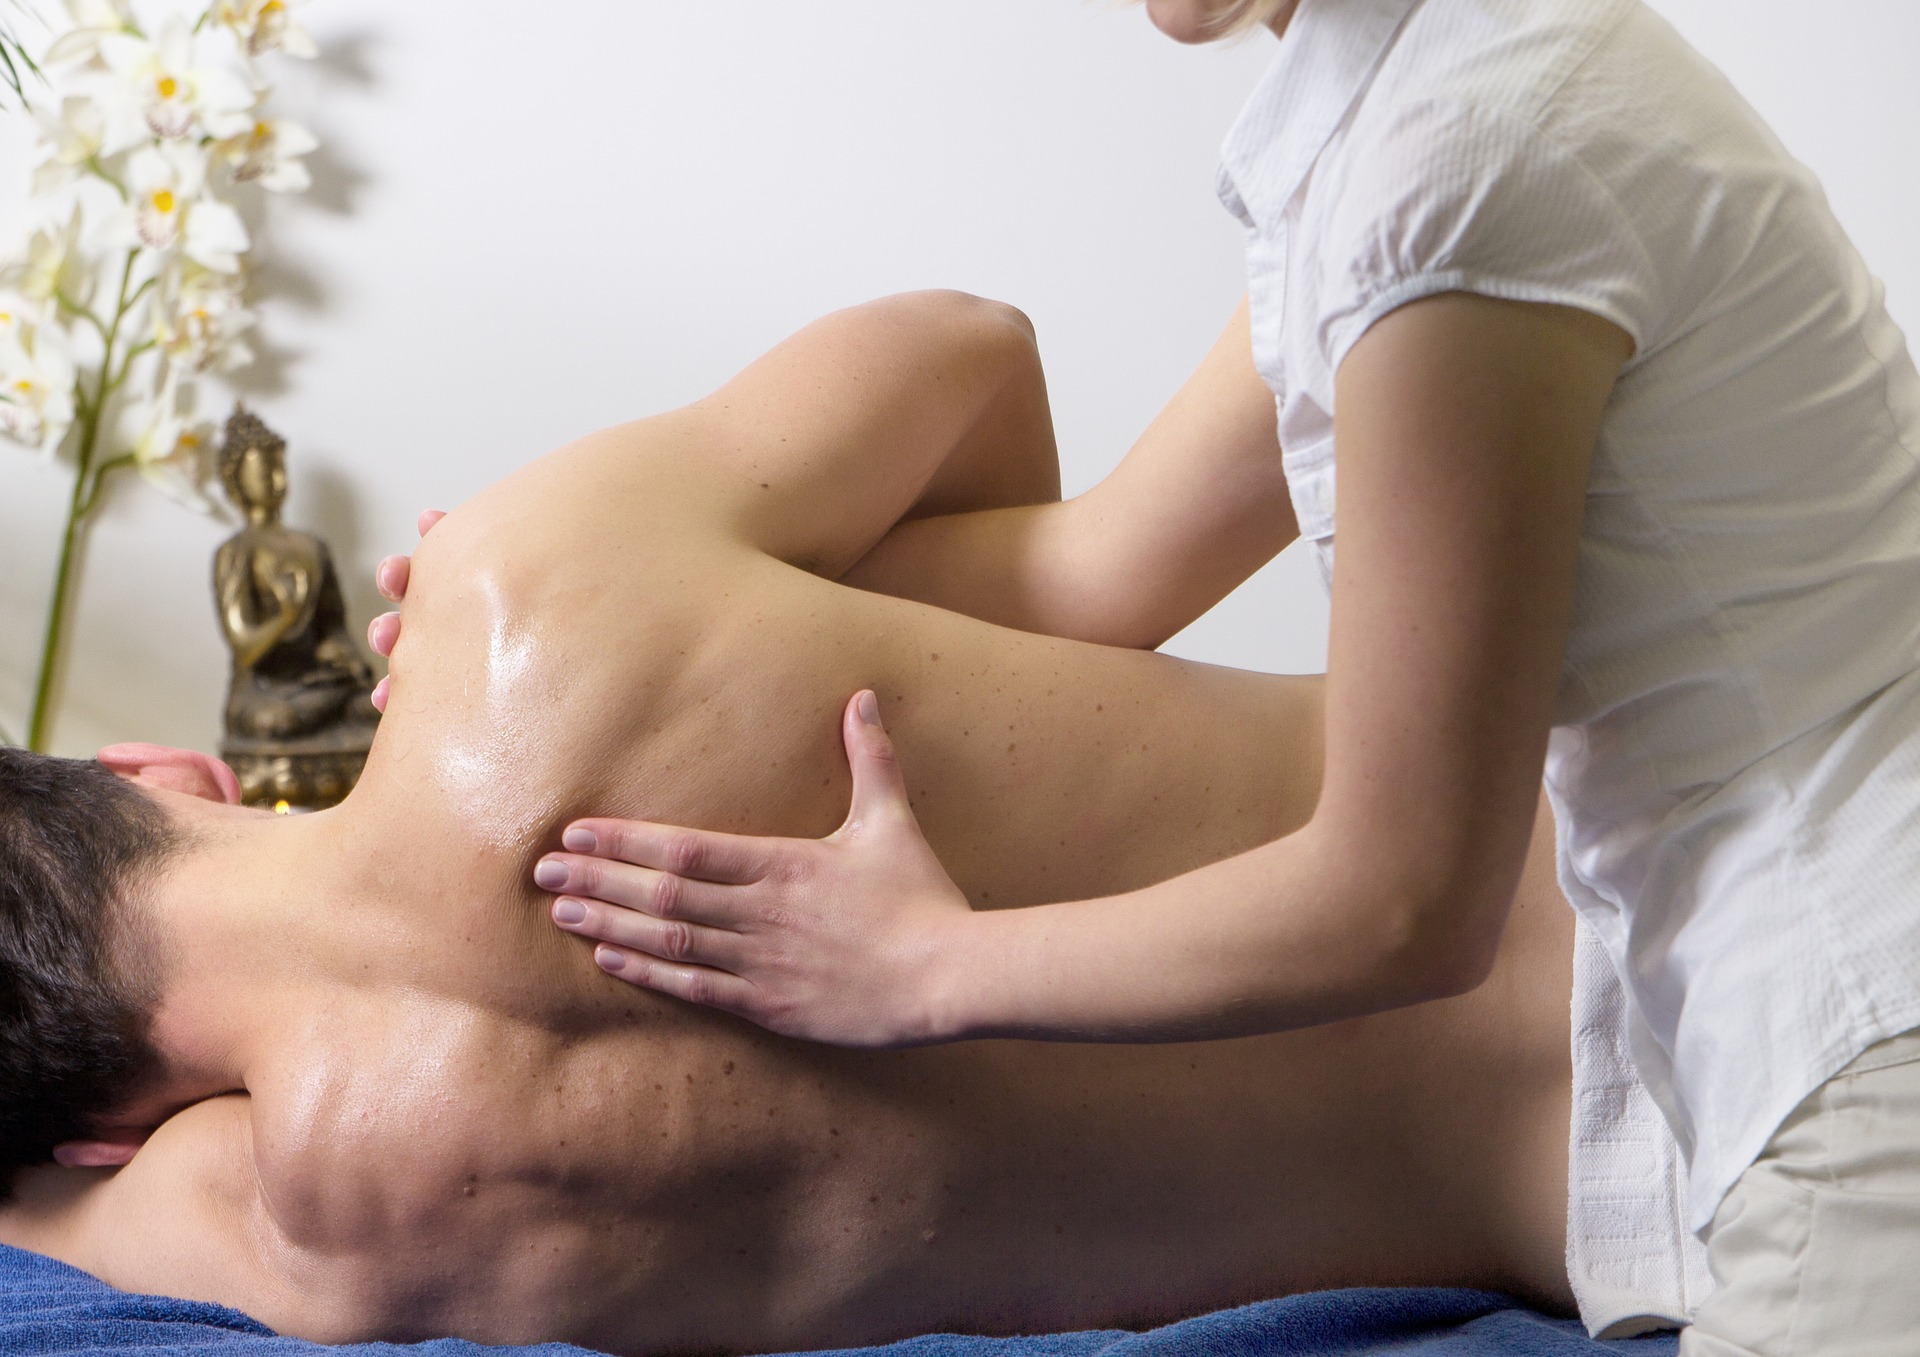 Massage Scheduling Software: 5 Things to Look for in a Provider